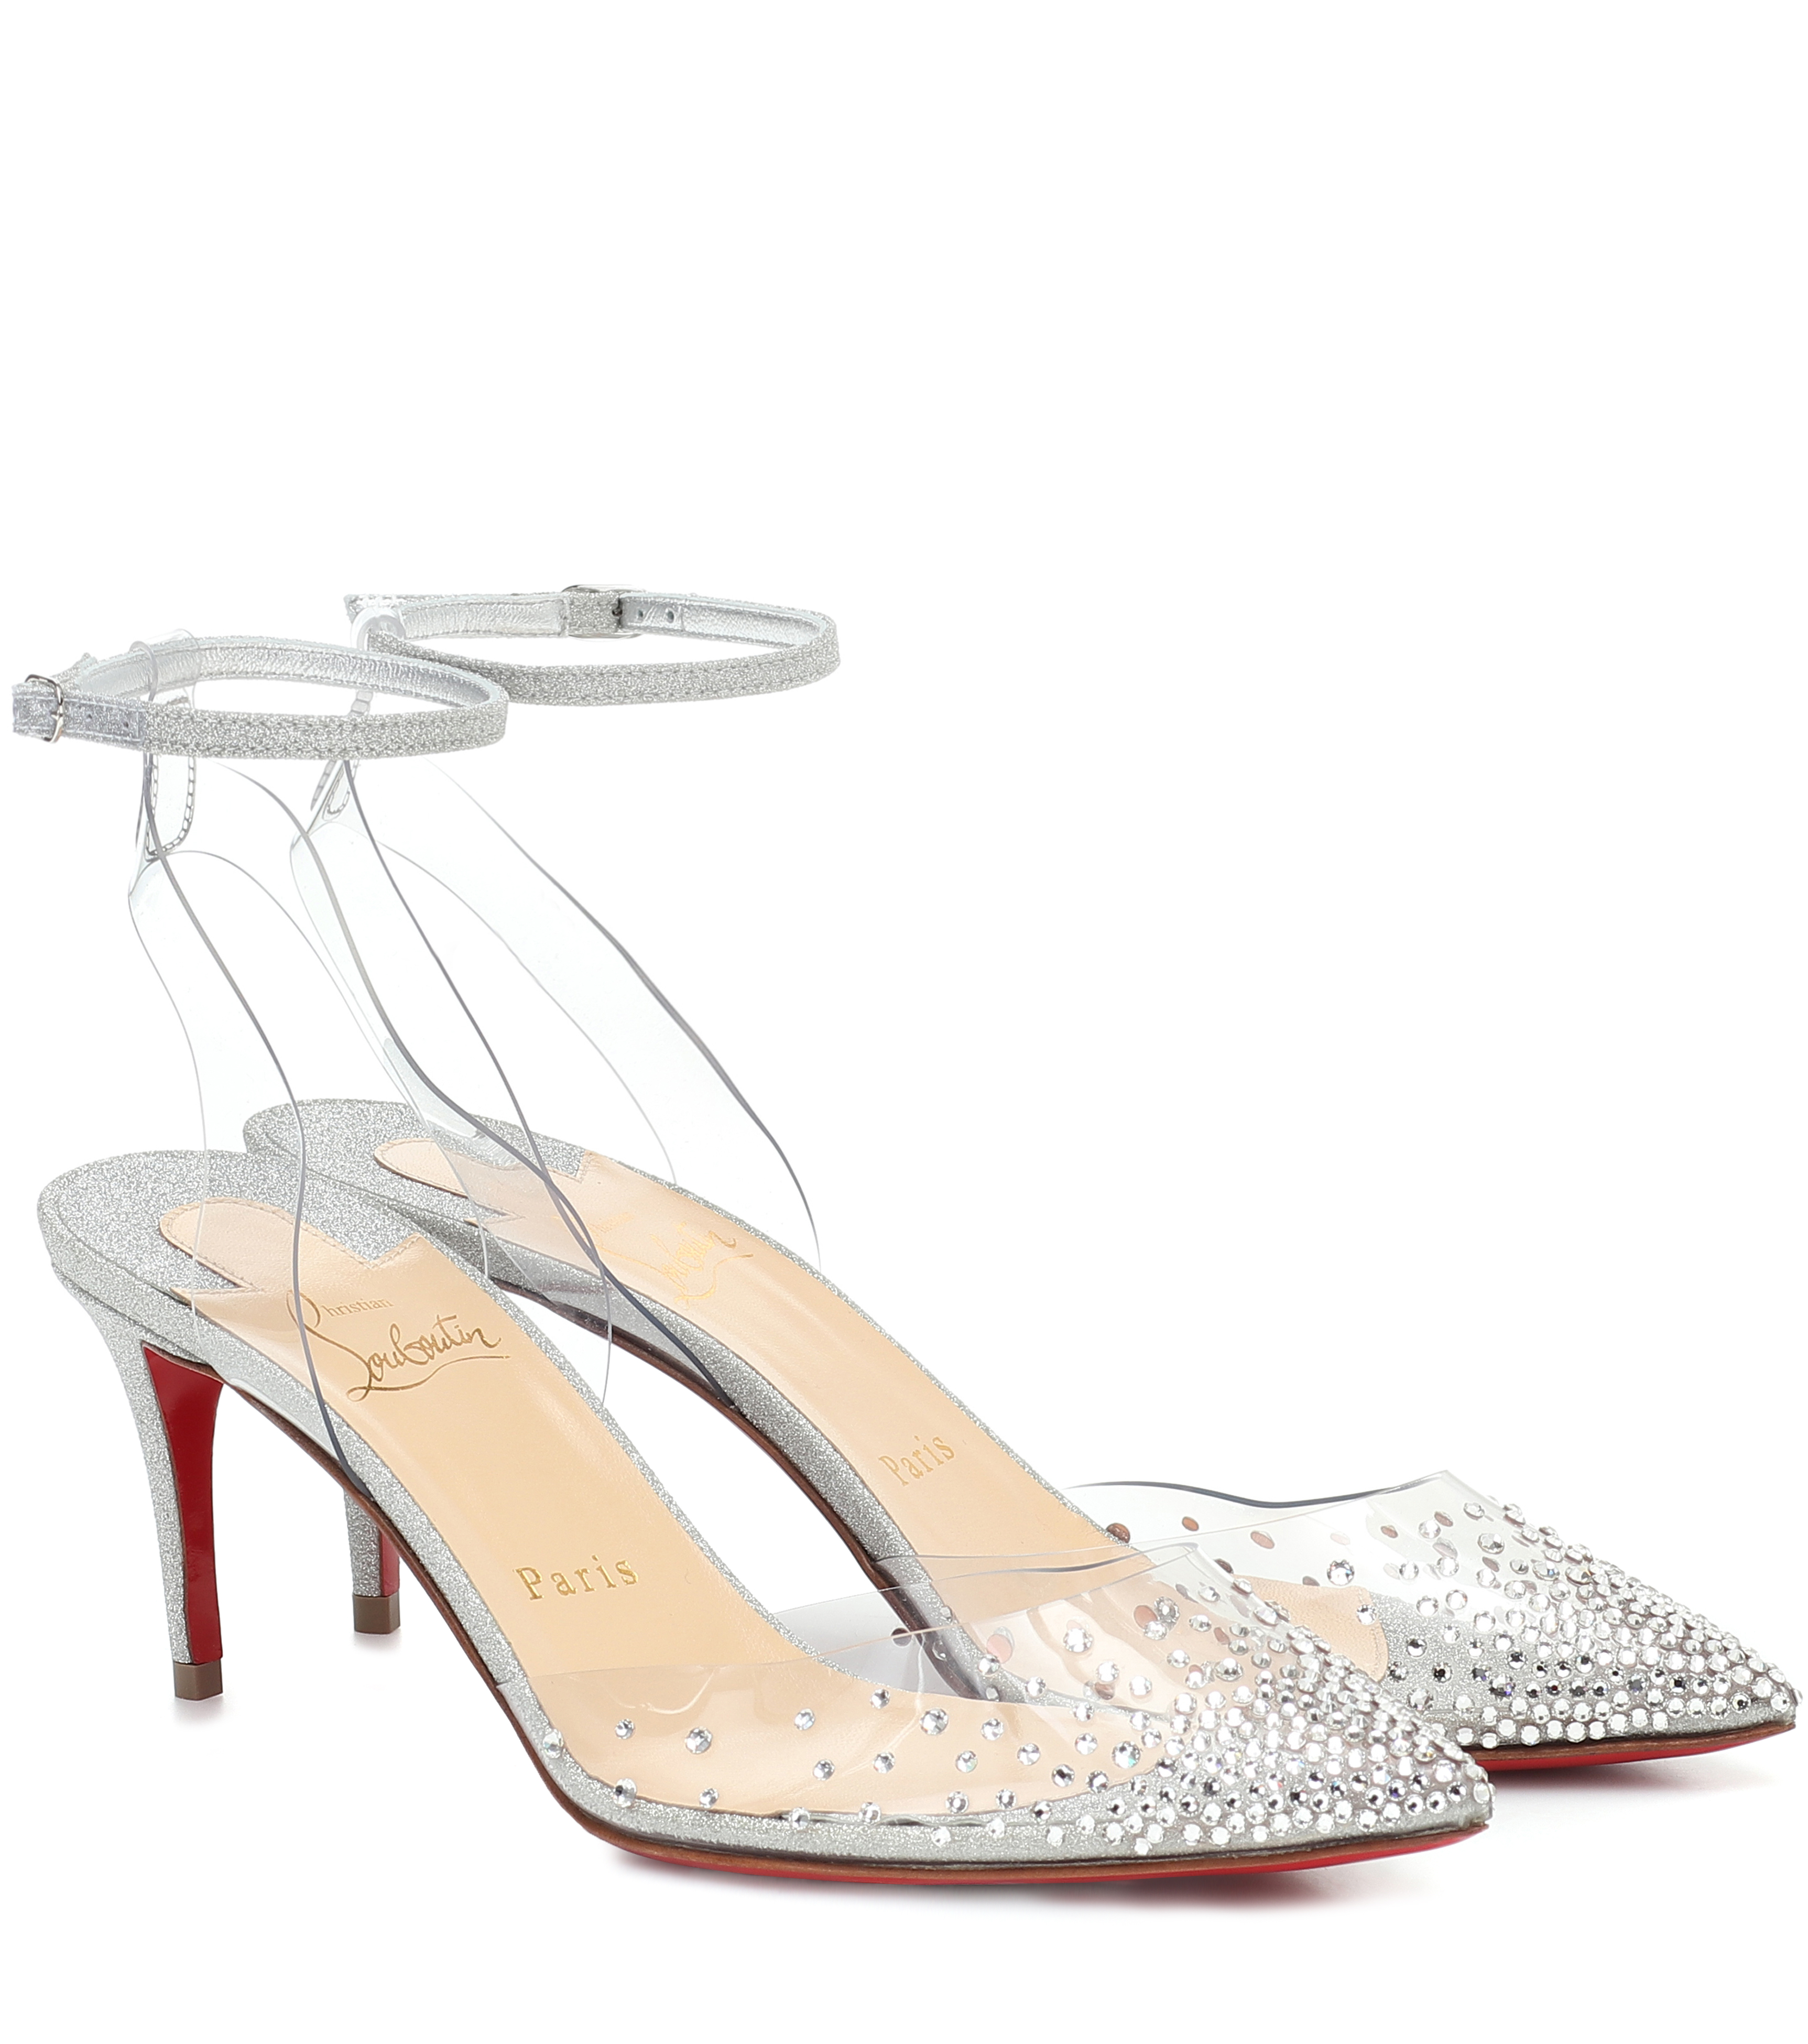 Mytheresa's exclusive capsule collection with Christian Louboutin is now available (фото 8)